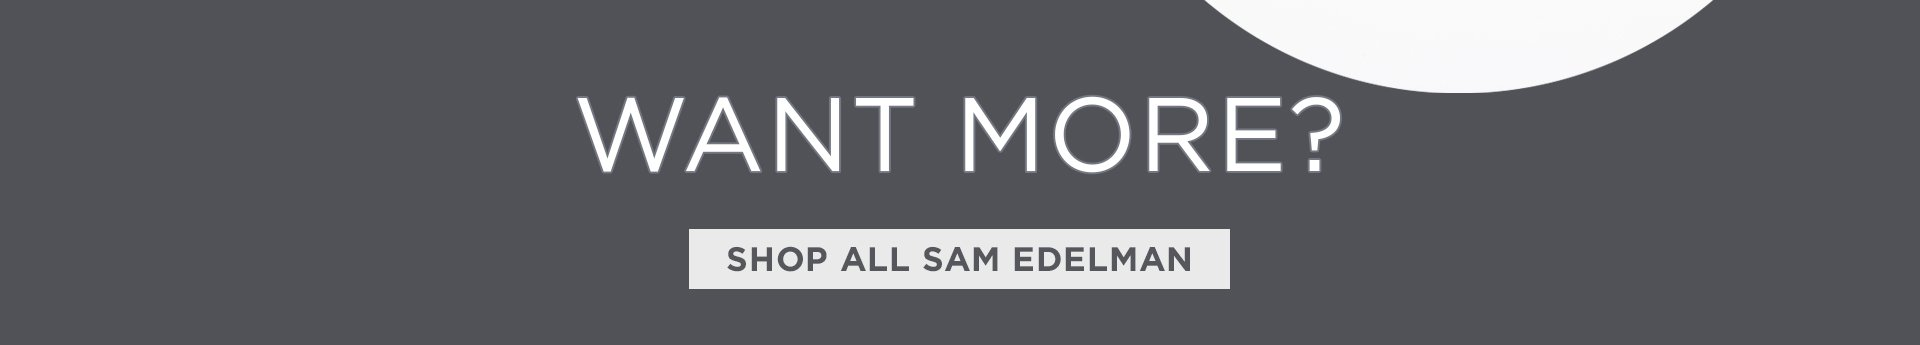 Shop All Sam Edelman